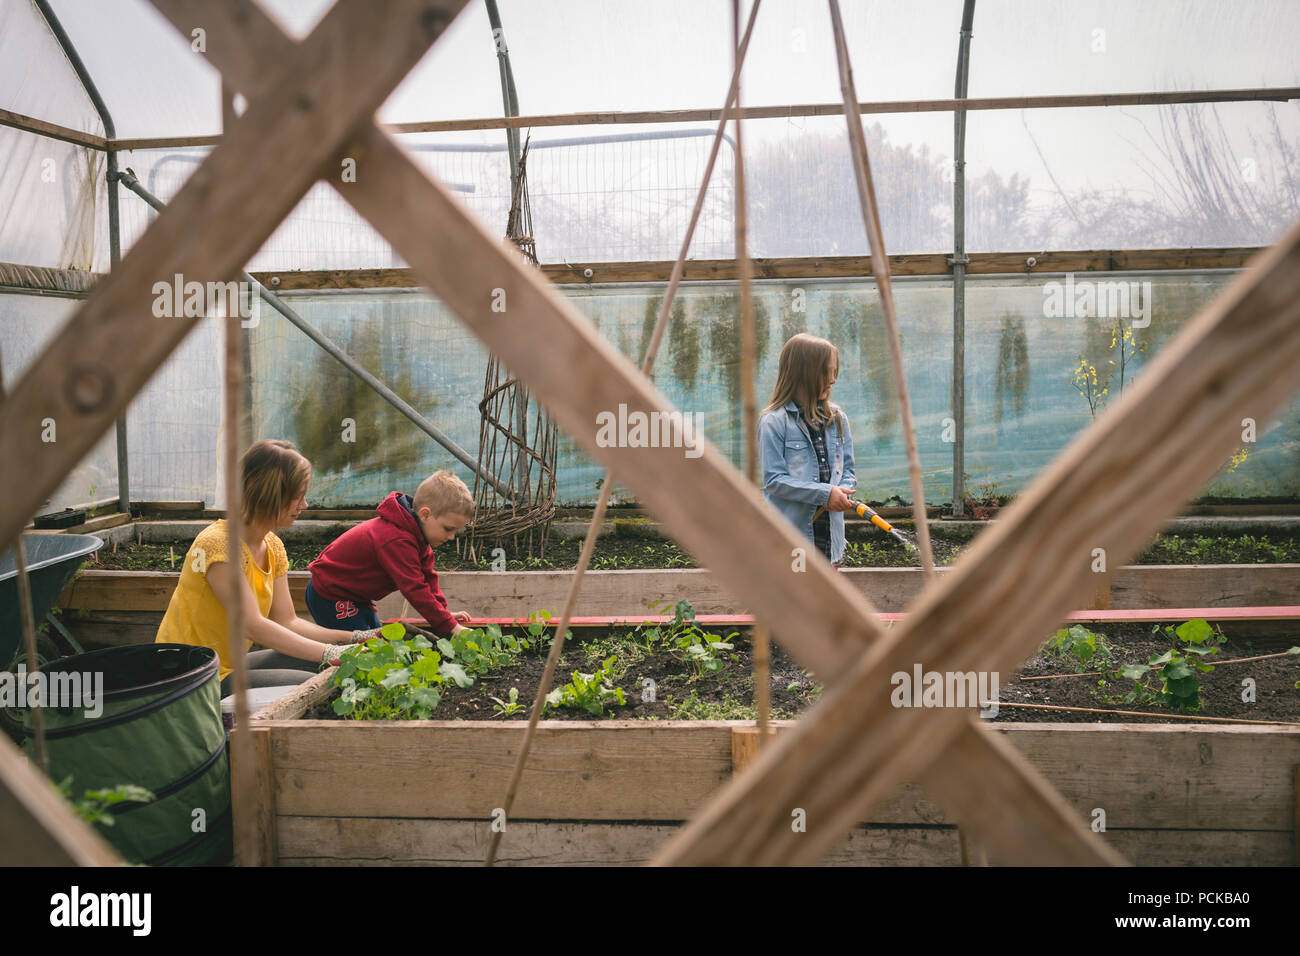 Kids helping mother in greenhouse plantation - Stock Image